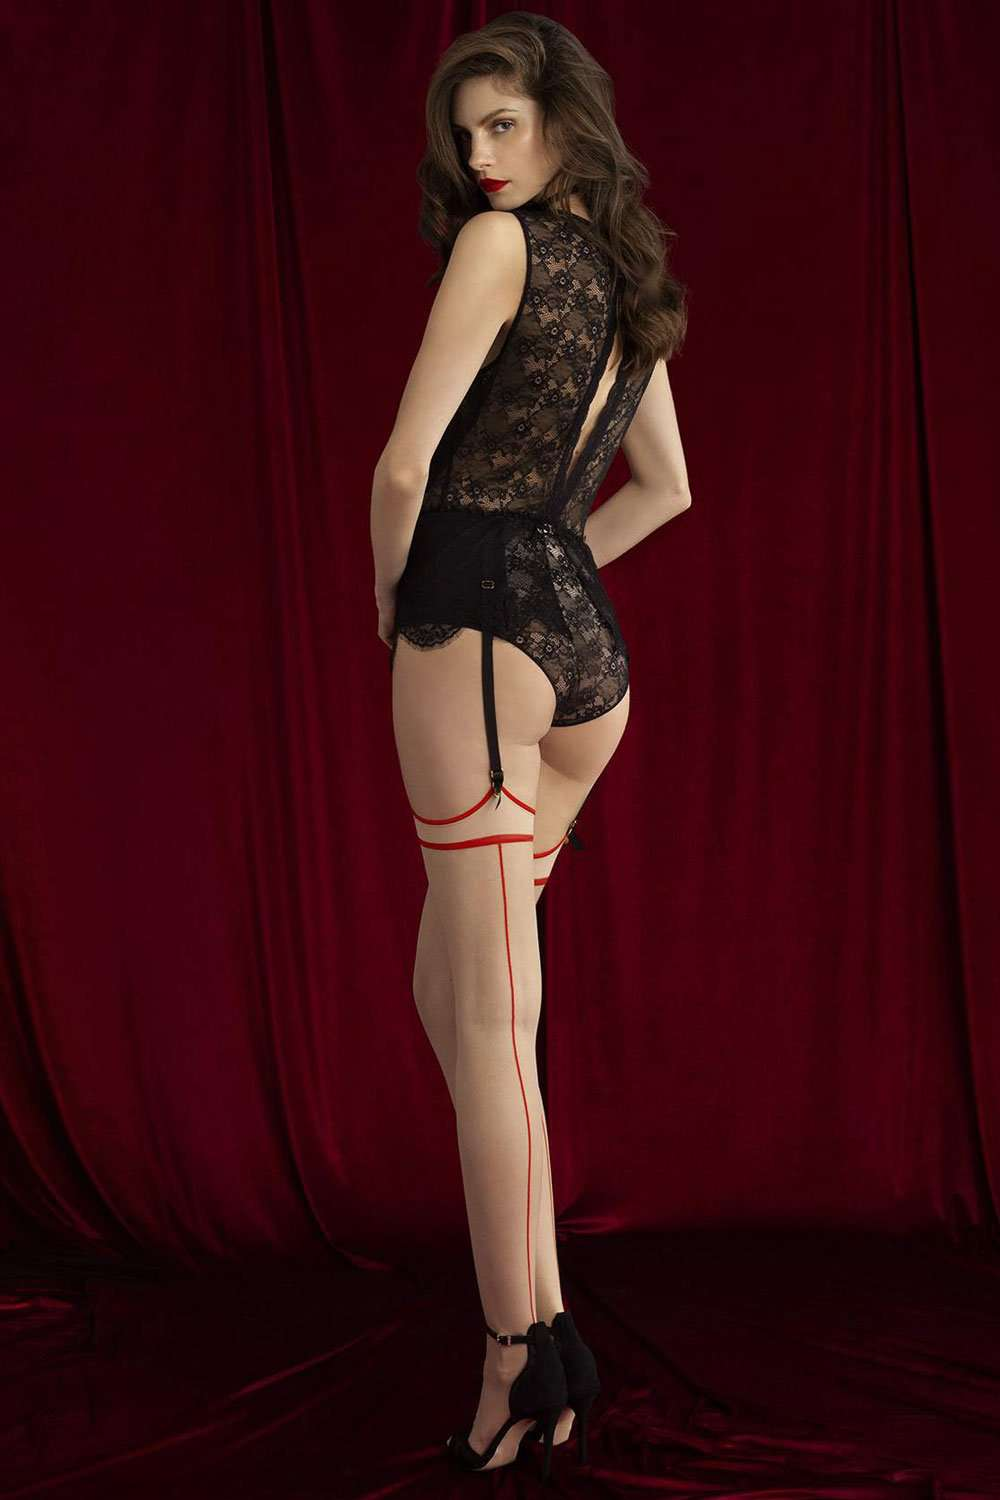 FiORE Sensual Madame Stockings 20 Denier - Naughty Knickers